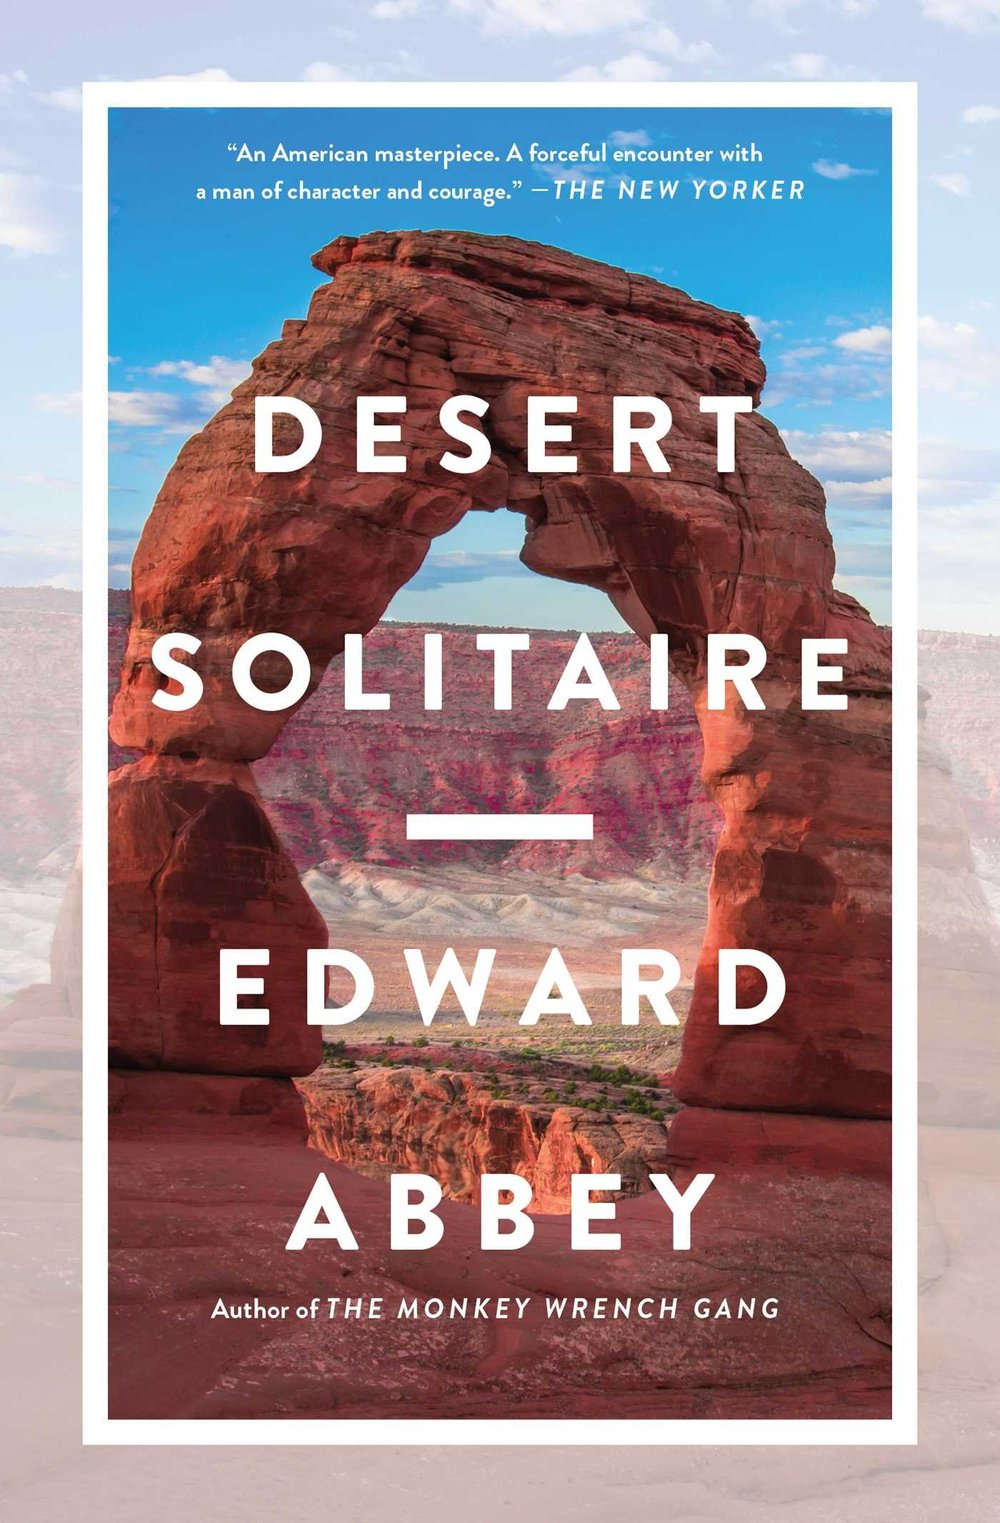 Desert Solitaire - By Edward AbbeyEdward Abbey wrote this book after he served as a park ranger in Arches National Park, Utah, which happens to be my home state. I've spent a lot of time wandering this part of the world, and nothing captures the spirit of this area like Desert Solitaire.Description:Desert Solitaire is a collection of vignettes about life in the wilderness and the nature of the desert itself by park ranger and conservationist, Edward Abbey. The book details the unique adventures and conflicts the author faces, from dealing with the damage caused by development of the land or excessive tourism, to discovering a dead body. However Desert Solitaire is not just a collection of one man's stories, the book is also a philosophical memoir, full of Abbey's reflections on the desert as a paradox, at once beautiful and liberating, but also isolating and cruel. Often compared to Thoreau's Walden, Desert Solitaire is a powerful discussion of life's mysteries set against the stirring backdrop of the American southwestern wilderness.